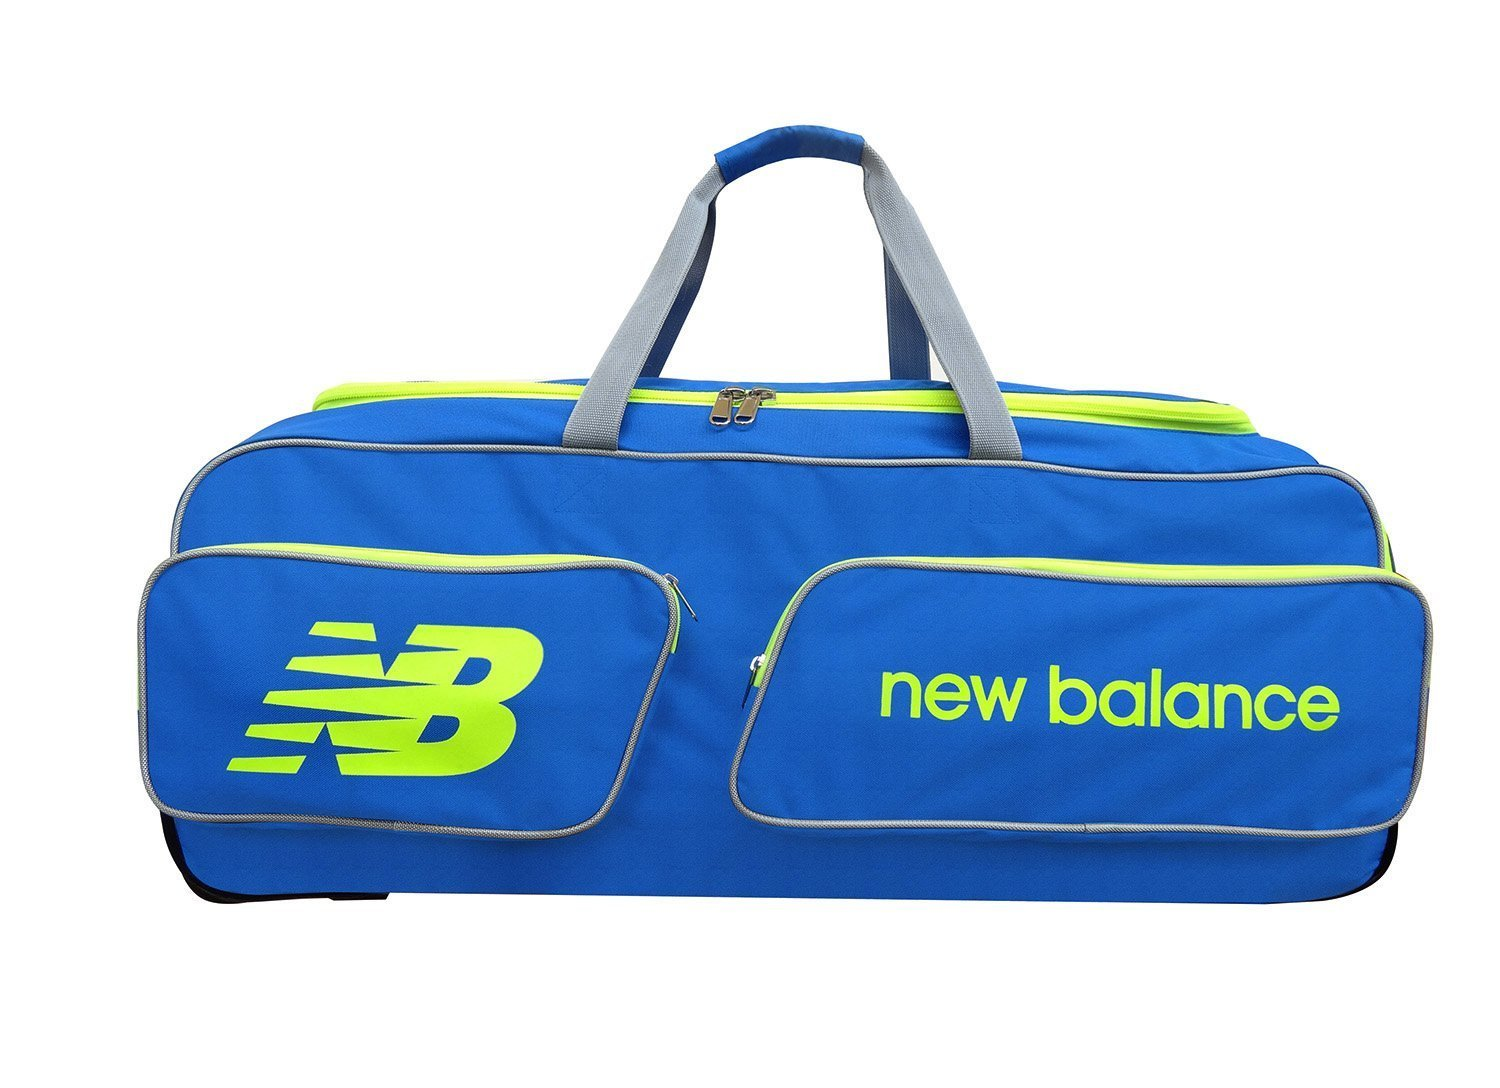 5a980e151e CW New Balance Team Equipment Cricket Kit Bag Blue Sports Carry Big Large  Size Bag With Heavy Duty Wheels Ideal For Club